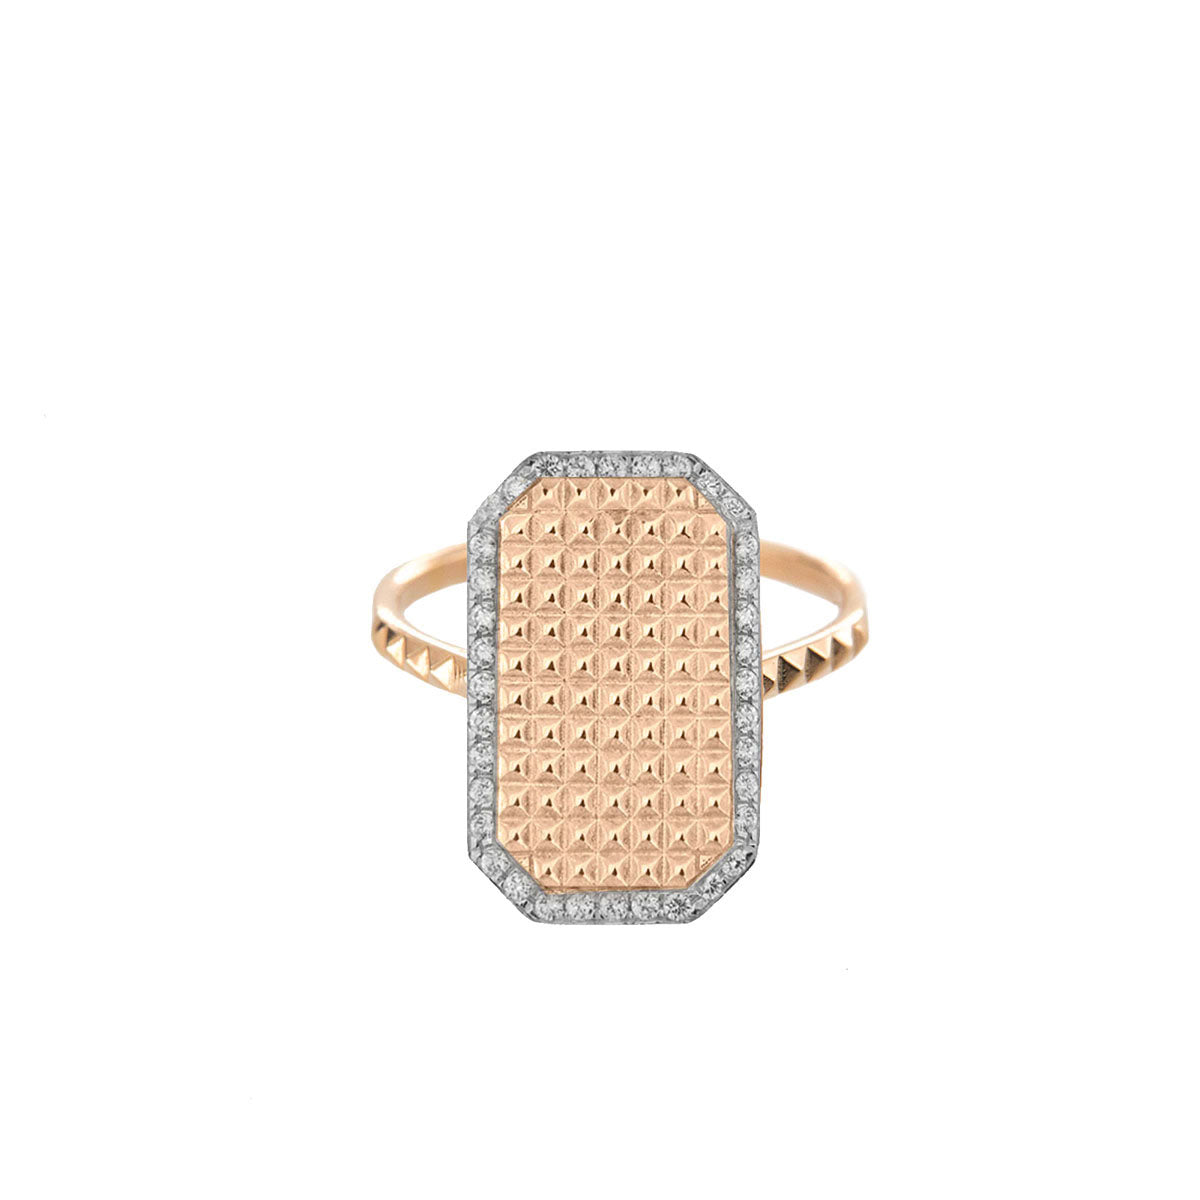 Rings - Ring stud texture - 1 | Rue des Mille